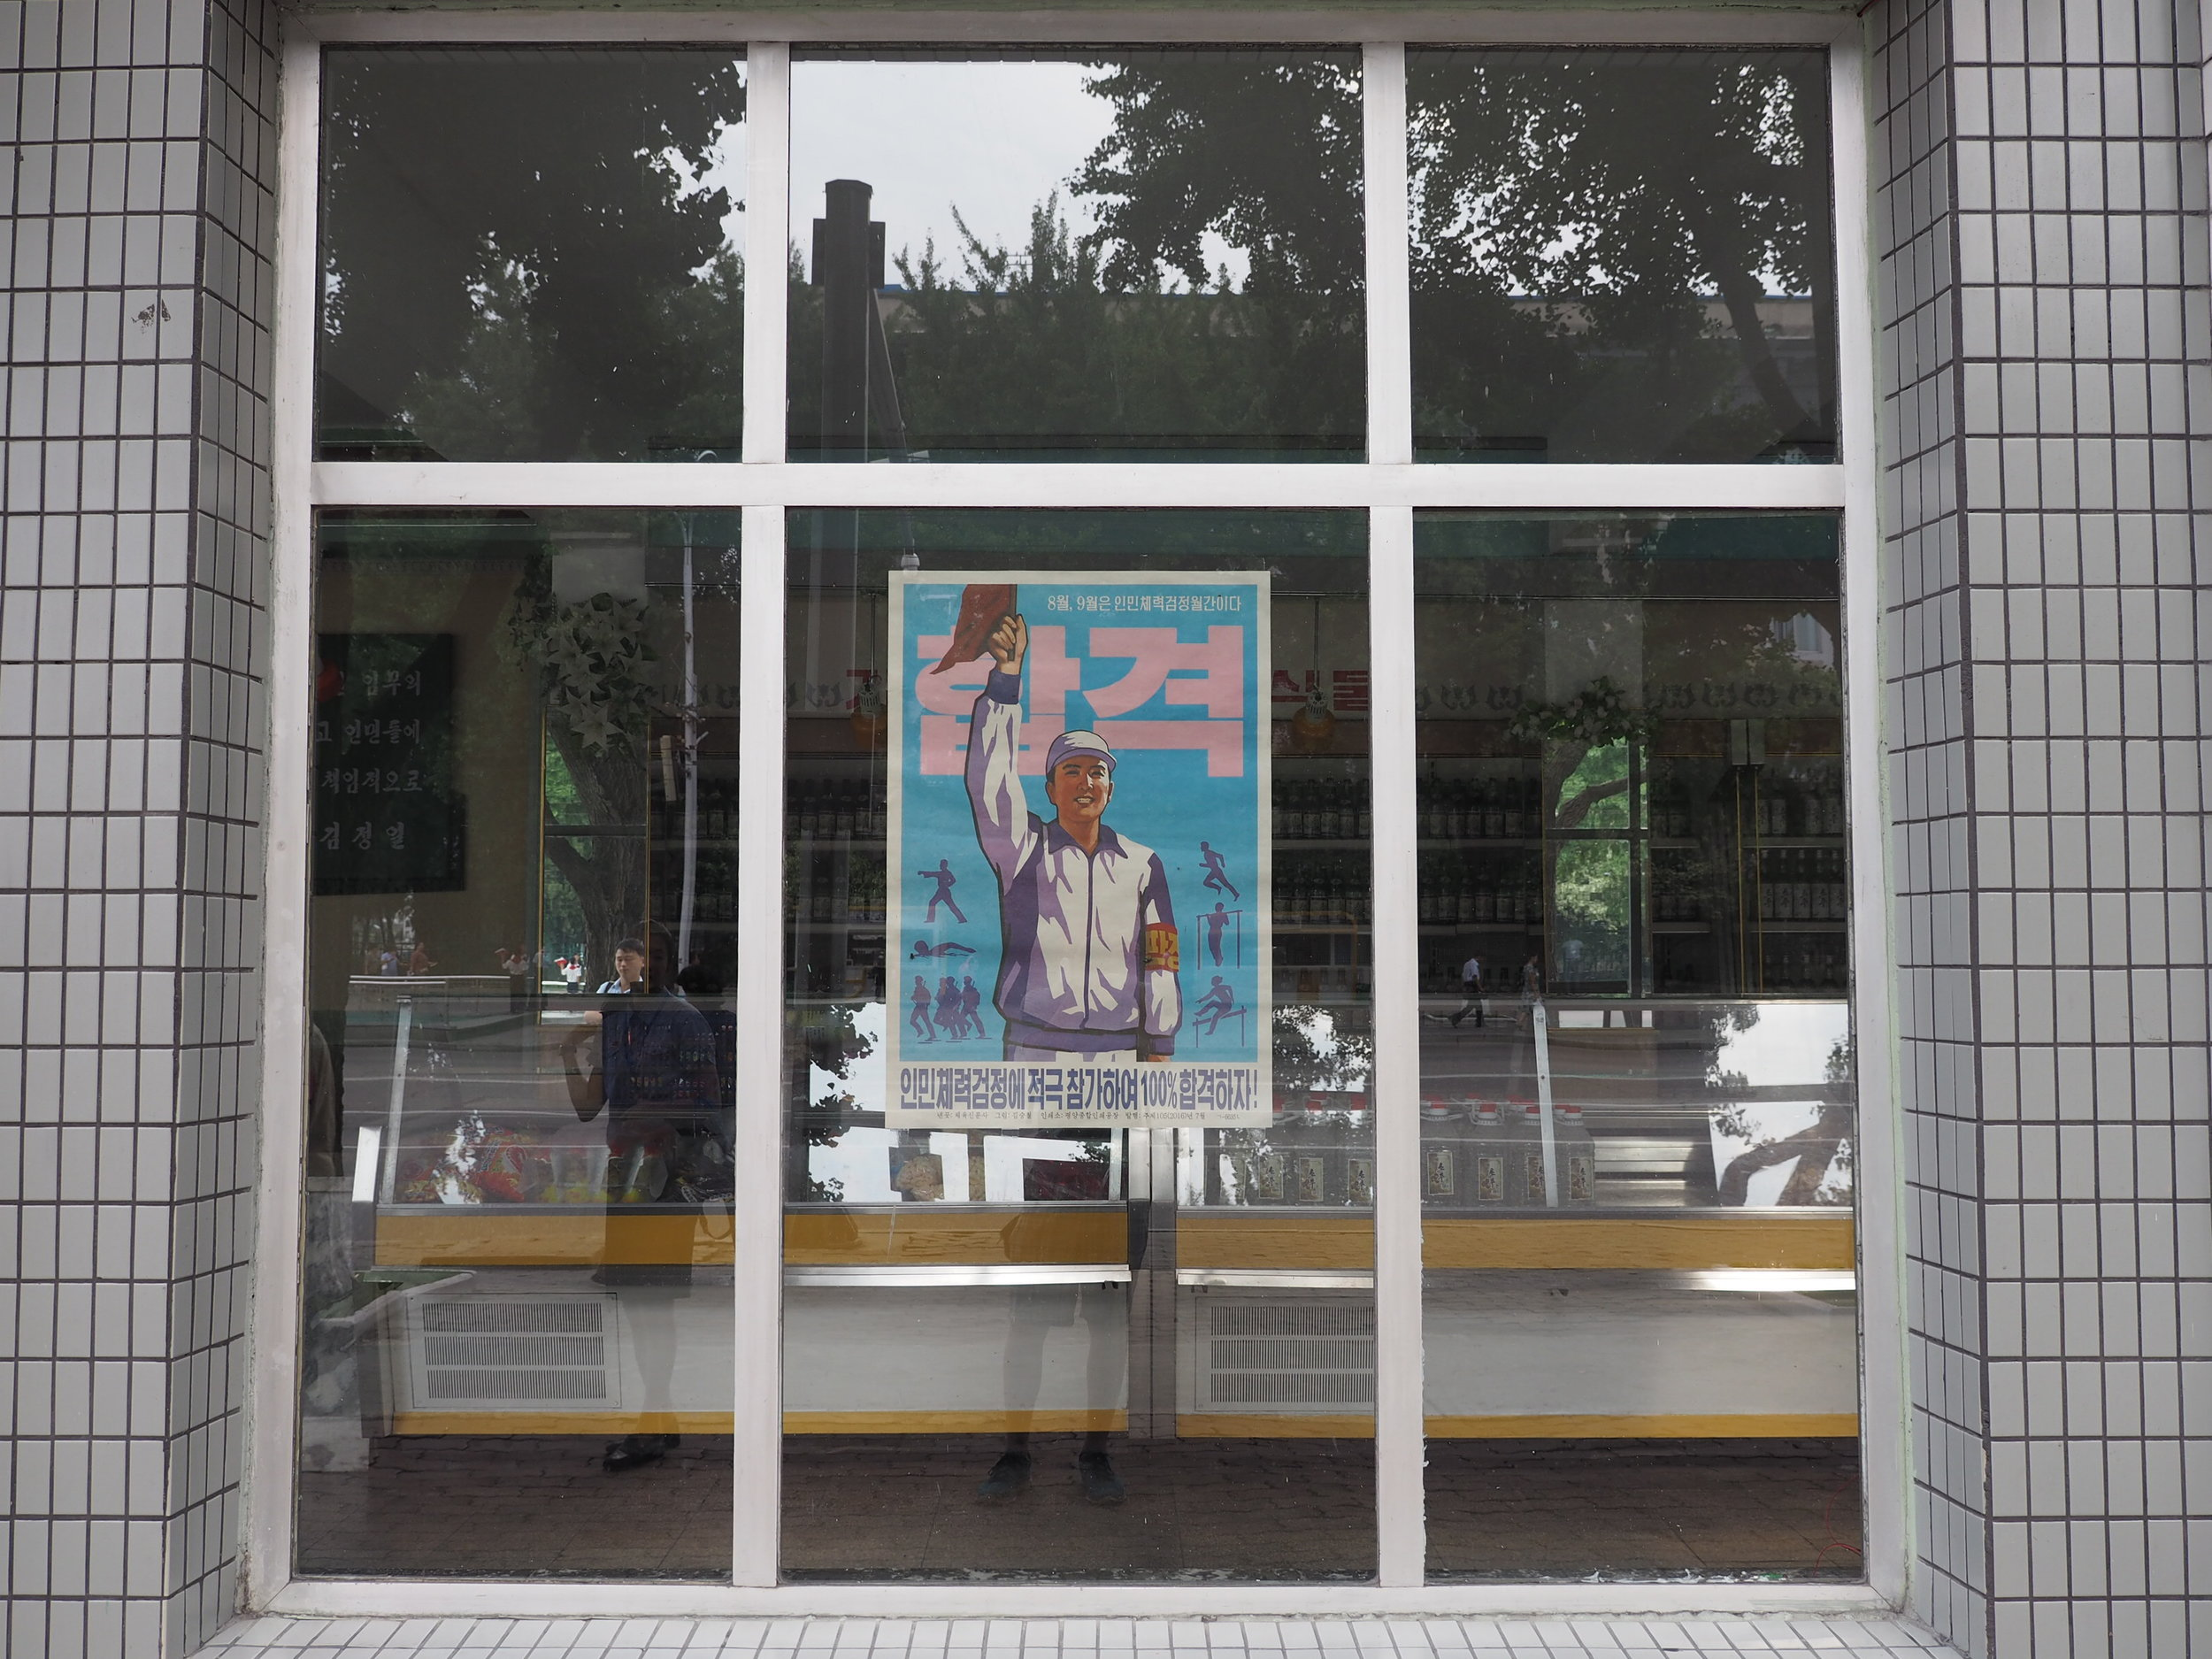 Propaganda poster on the window of a closed market